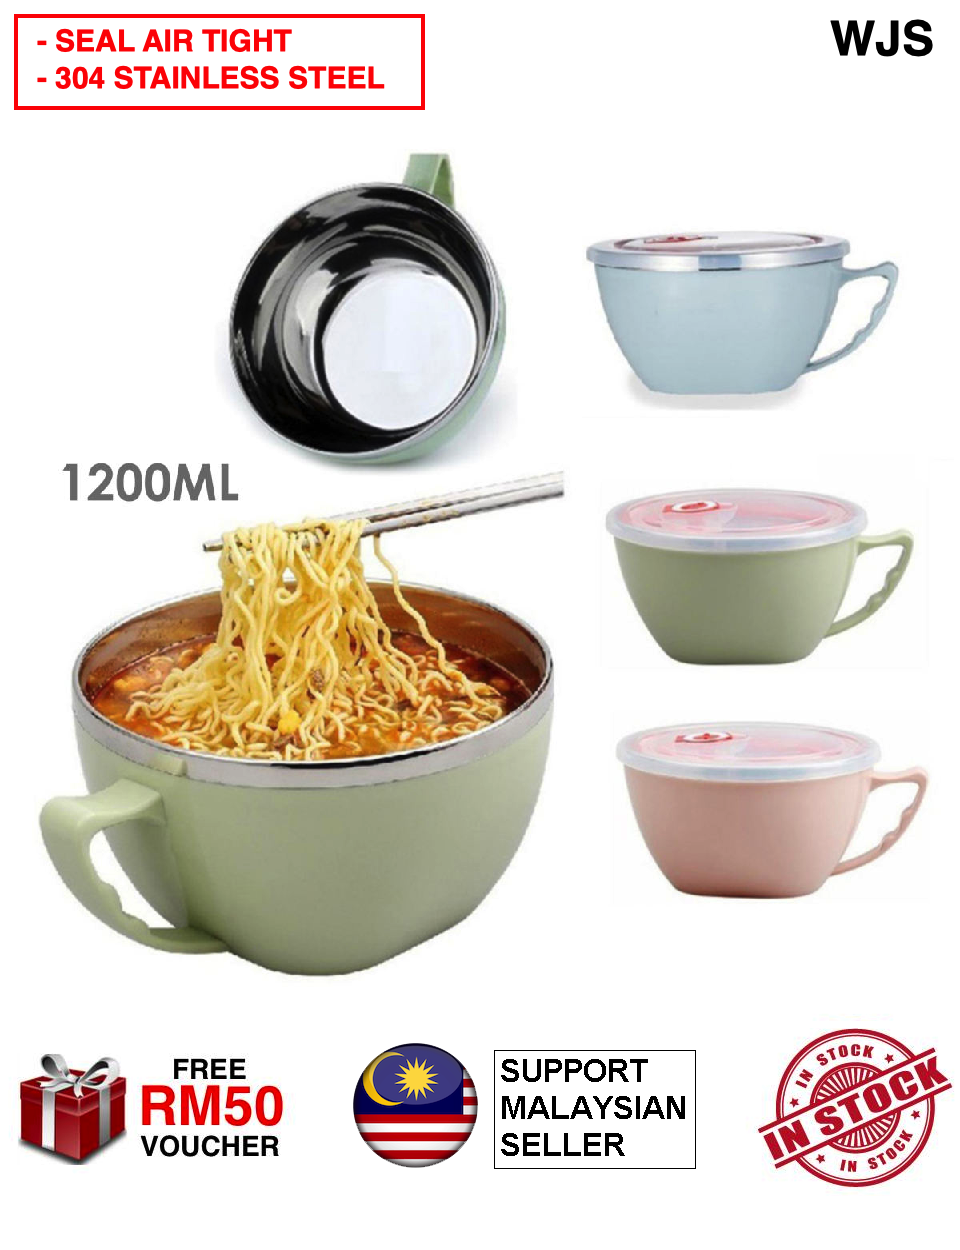 (PERFECT MAGGI PARTNER) WJS Large Scrumptious Maggi Mug Korean Style Multipurpose Instant Noodle 1200ML Stainless Steel Bowl With Seal Noodle Bowl Mangkuk Mee Segera PINK BLUE GREEN [FREE RM 50 VOUCHER]